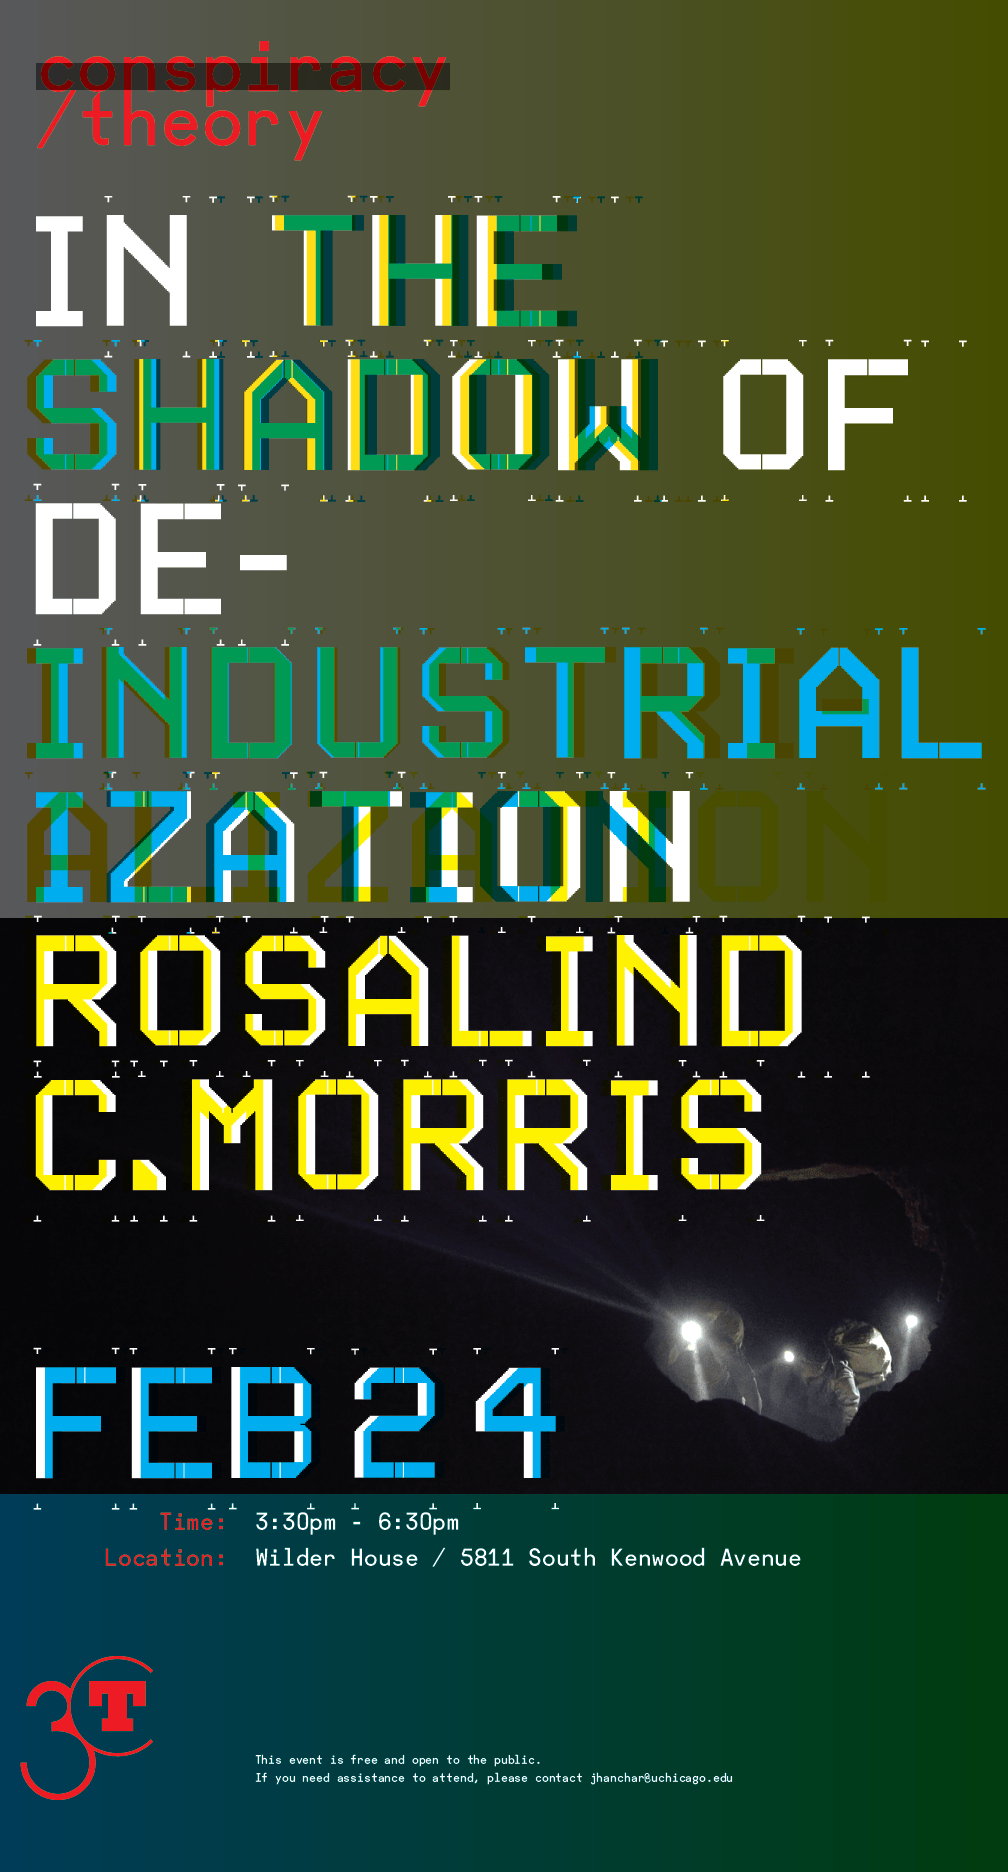 poster for Rosalind C. Morris event at 3CT